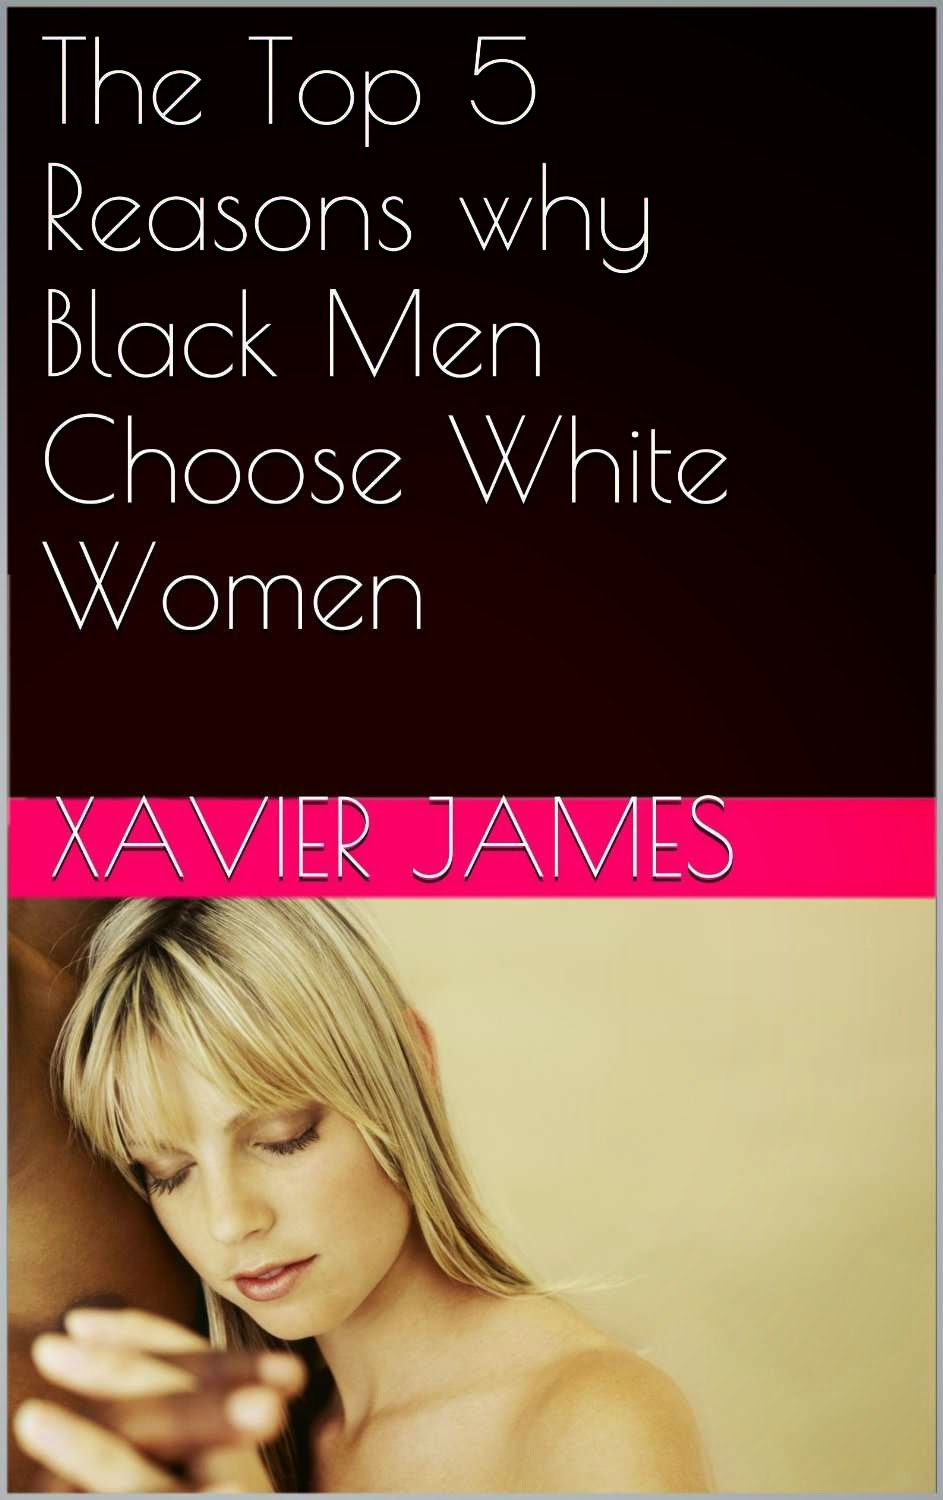 Need More Xavier James?